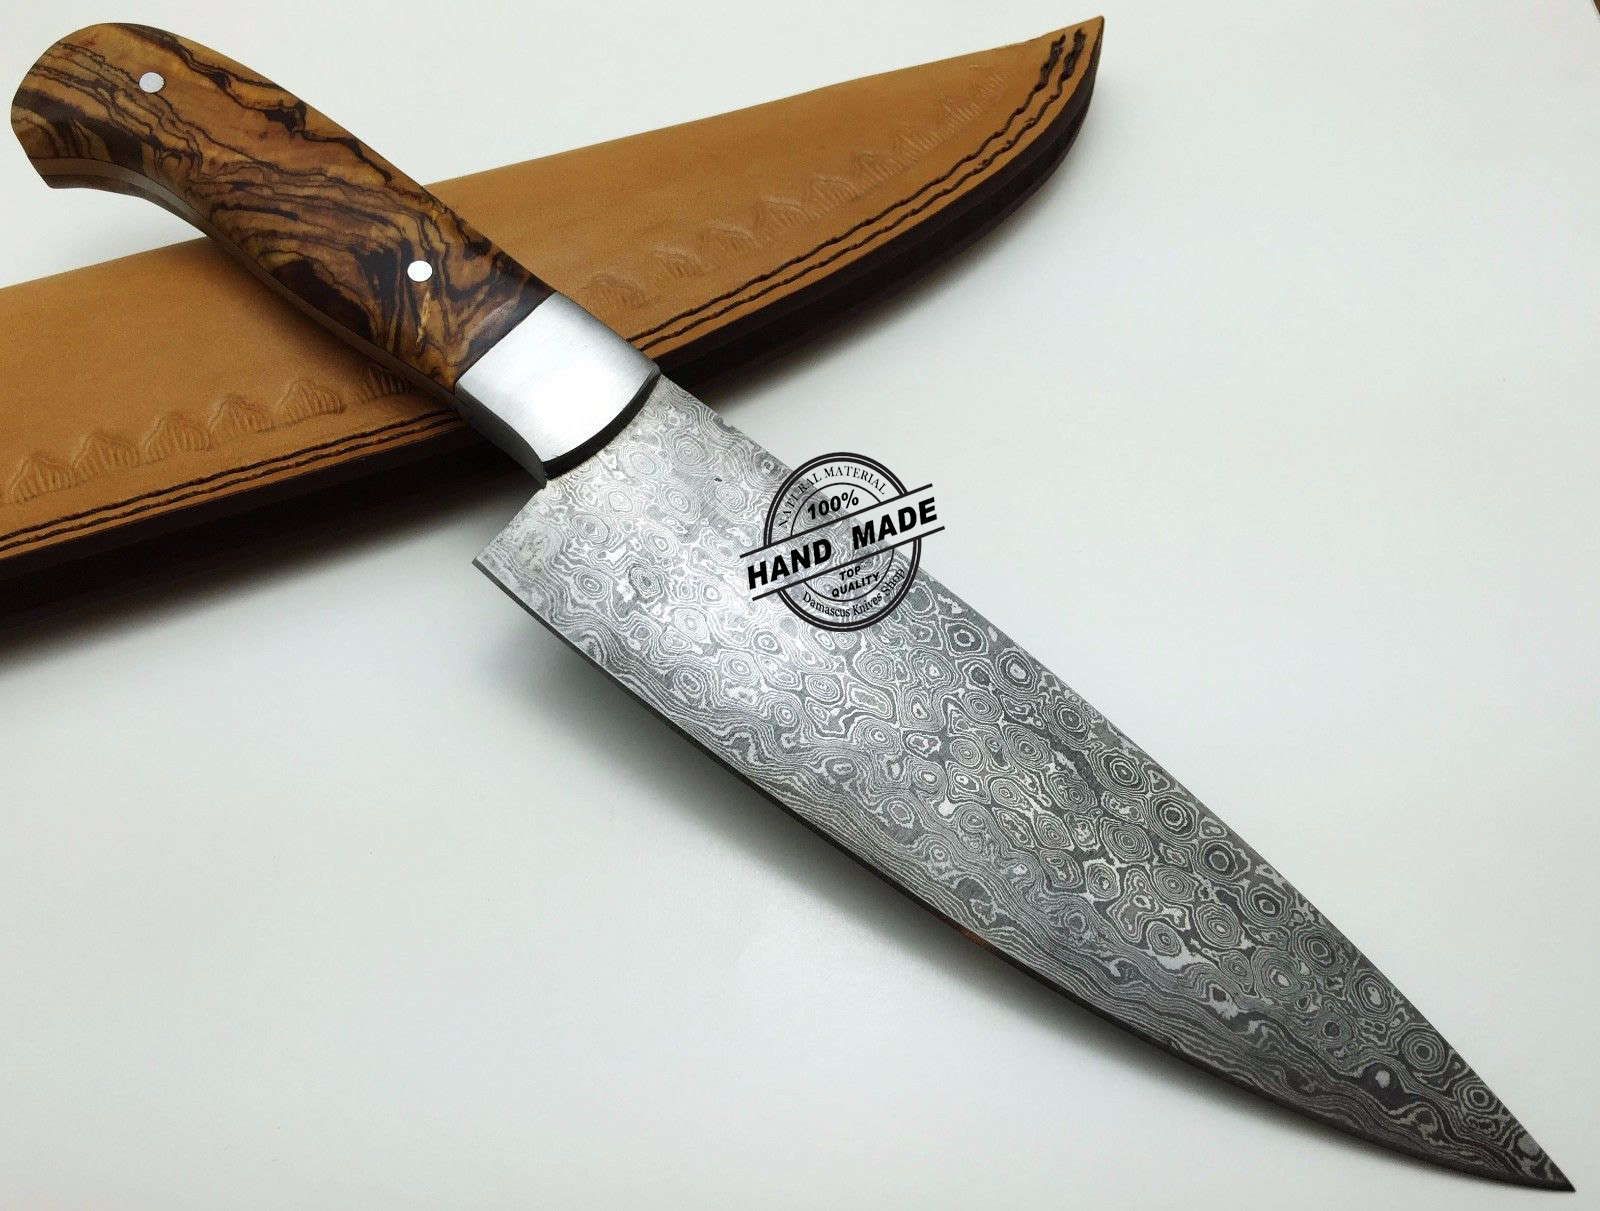 best damascus kitchen knives timers regular knife custom handmade steel4 steel chefs with rose wood handle leather sheaths 1569